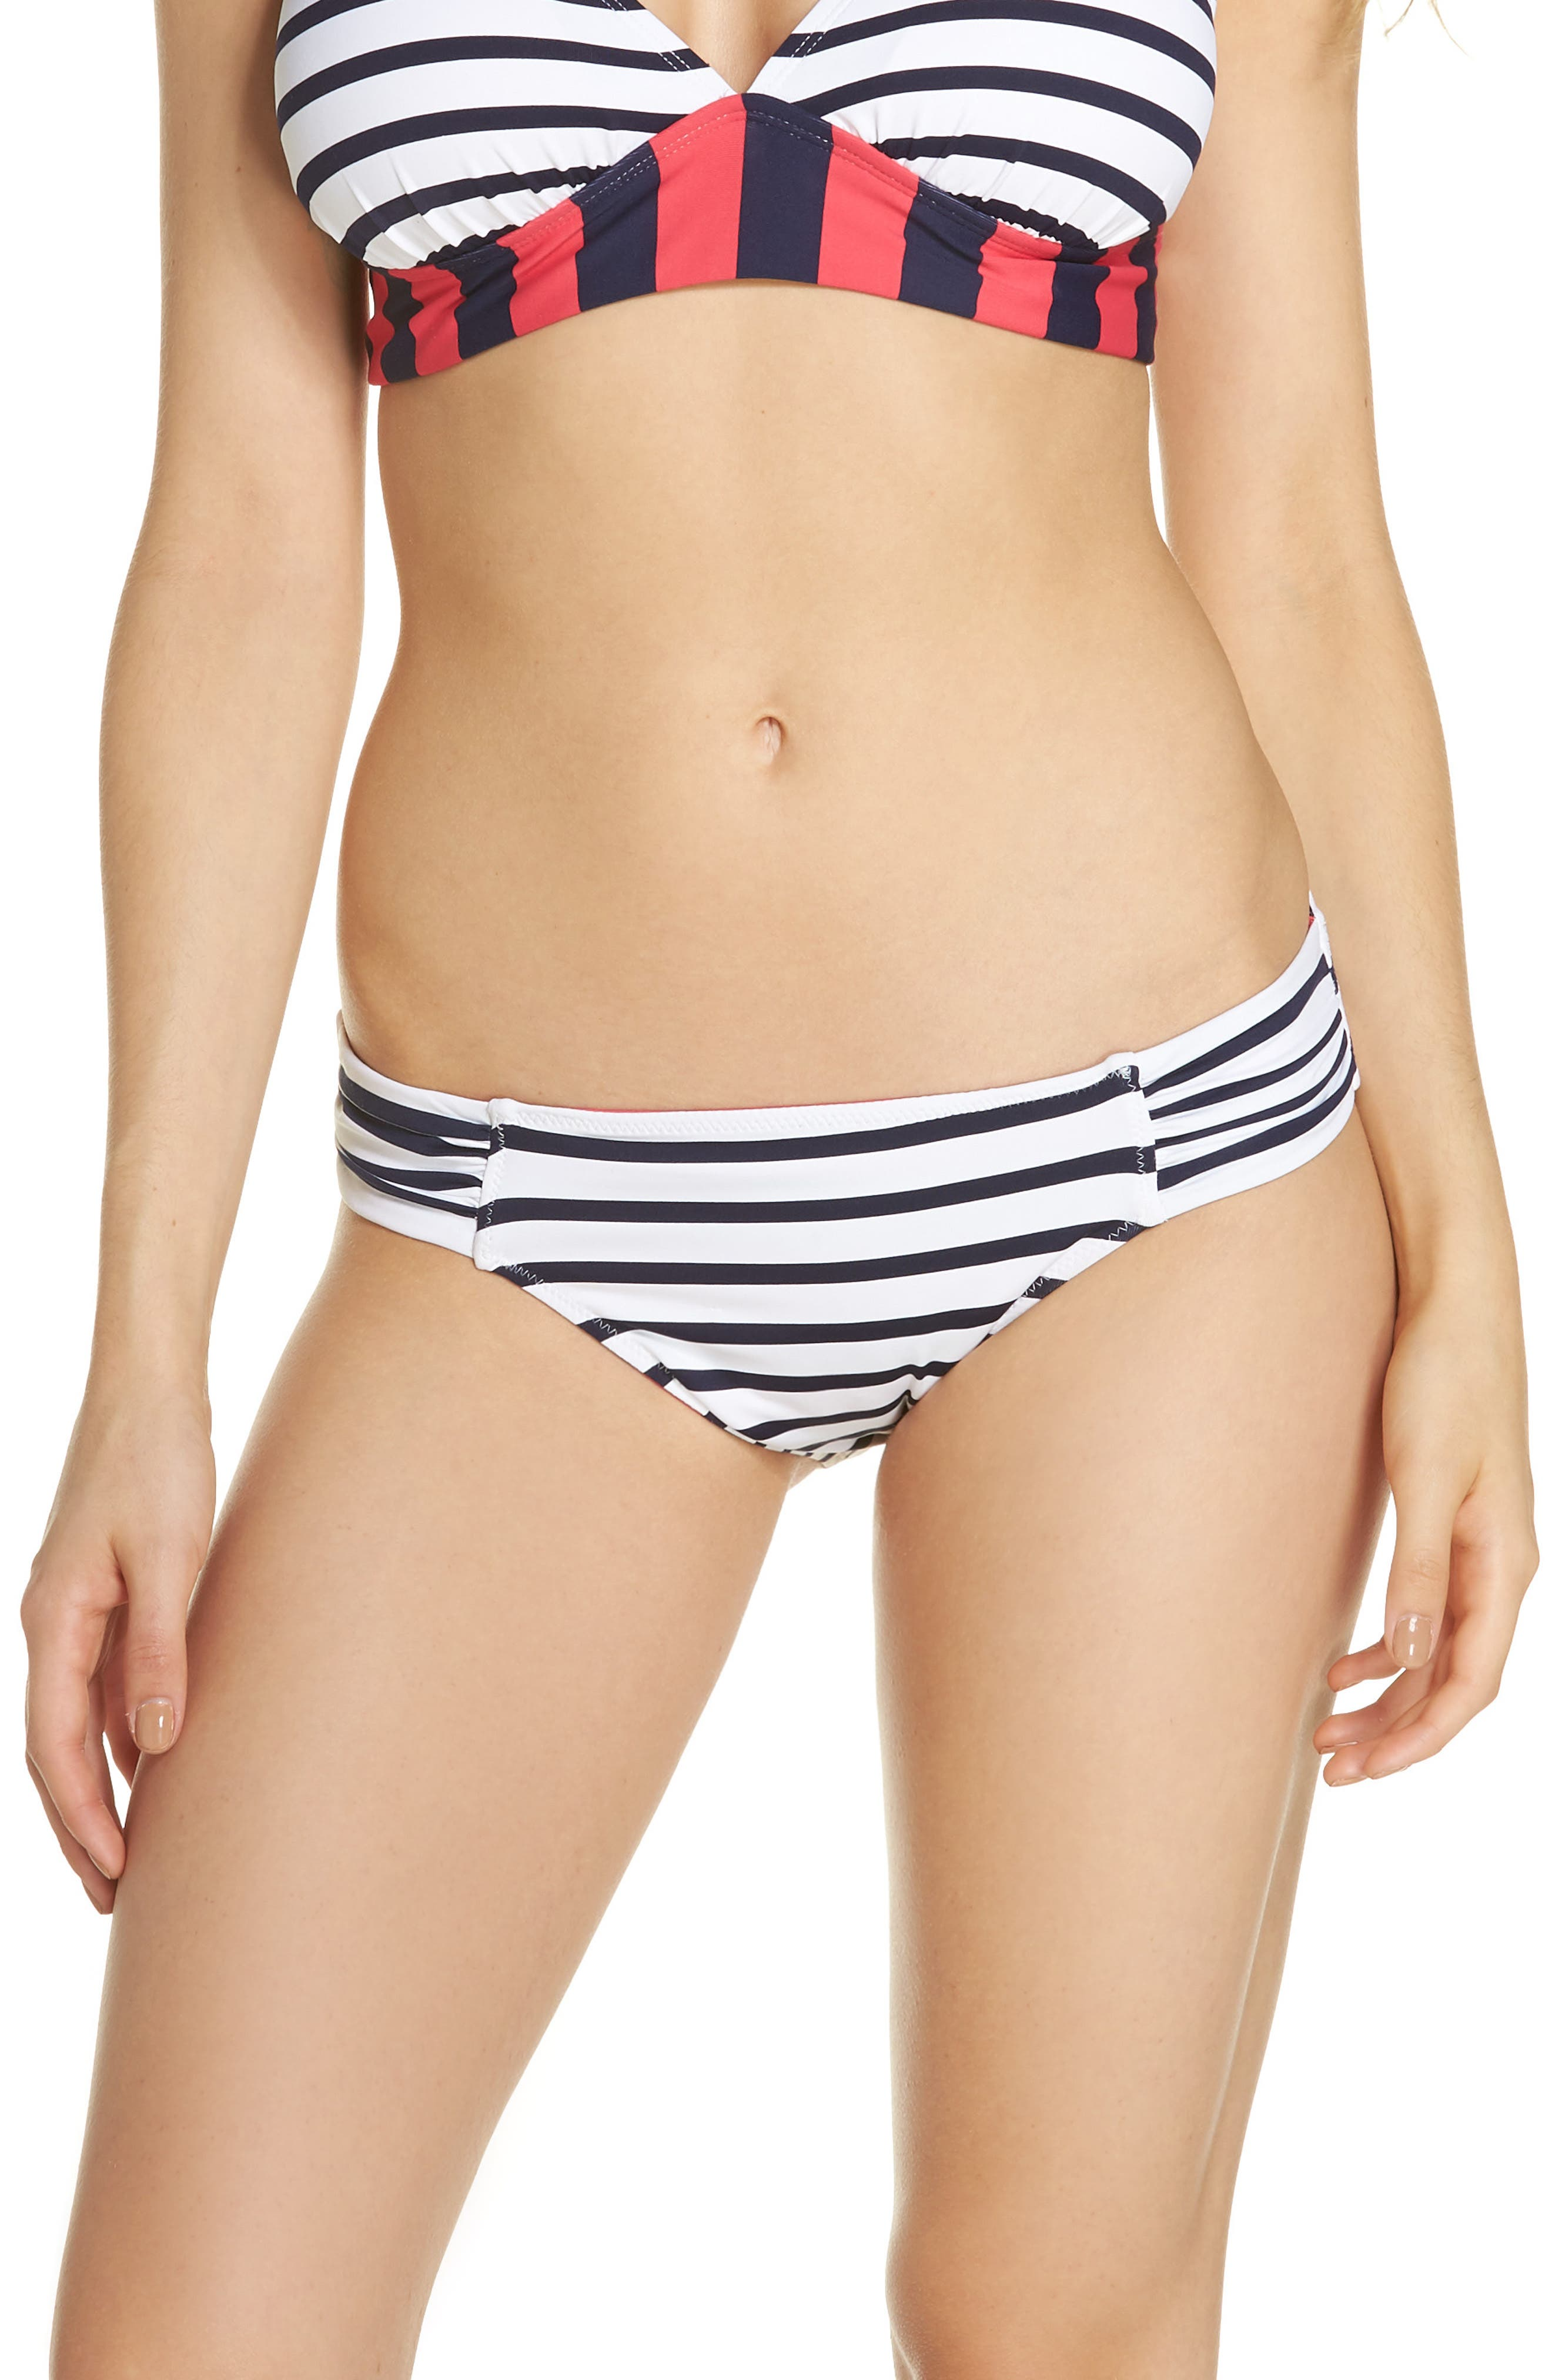 Channel Surfing Reversible Hipster Bikini Bottoms,                         Main,                         color, Mare Blue